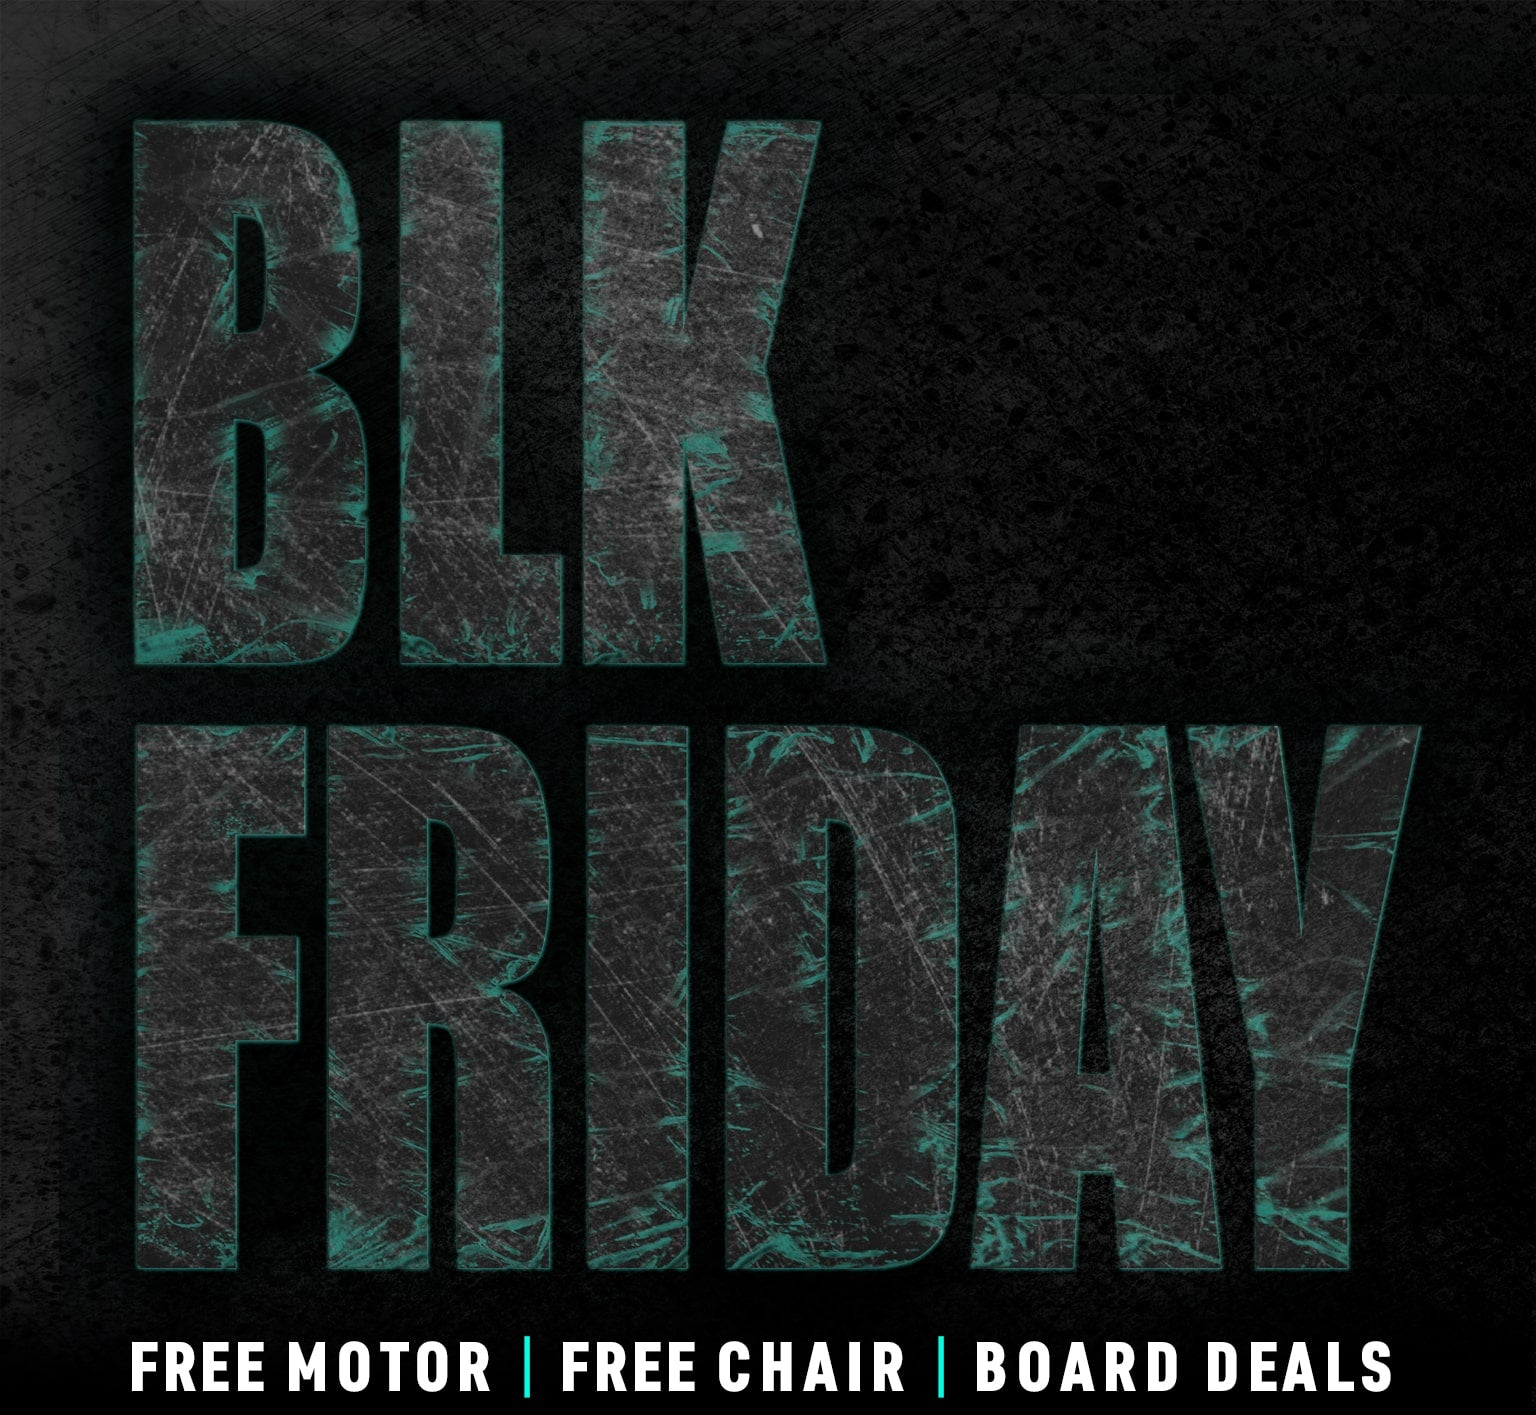 Black November Deals are Here